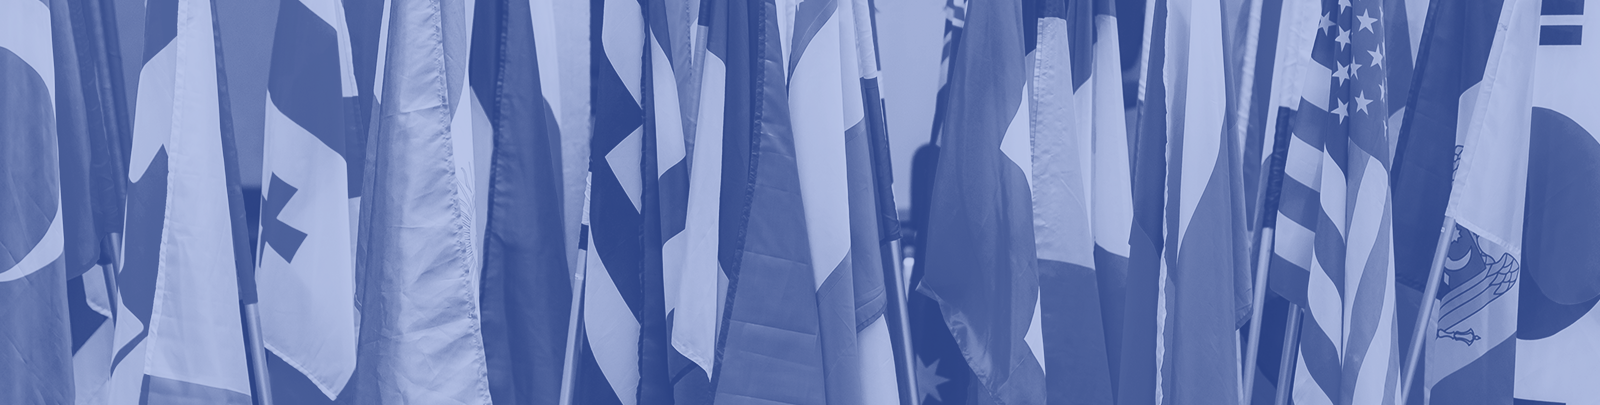 multiple flags from different countries header image